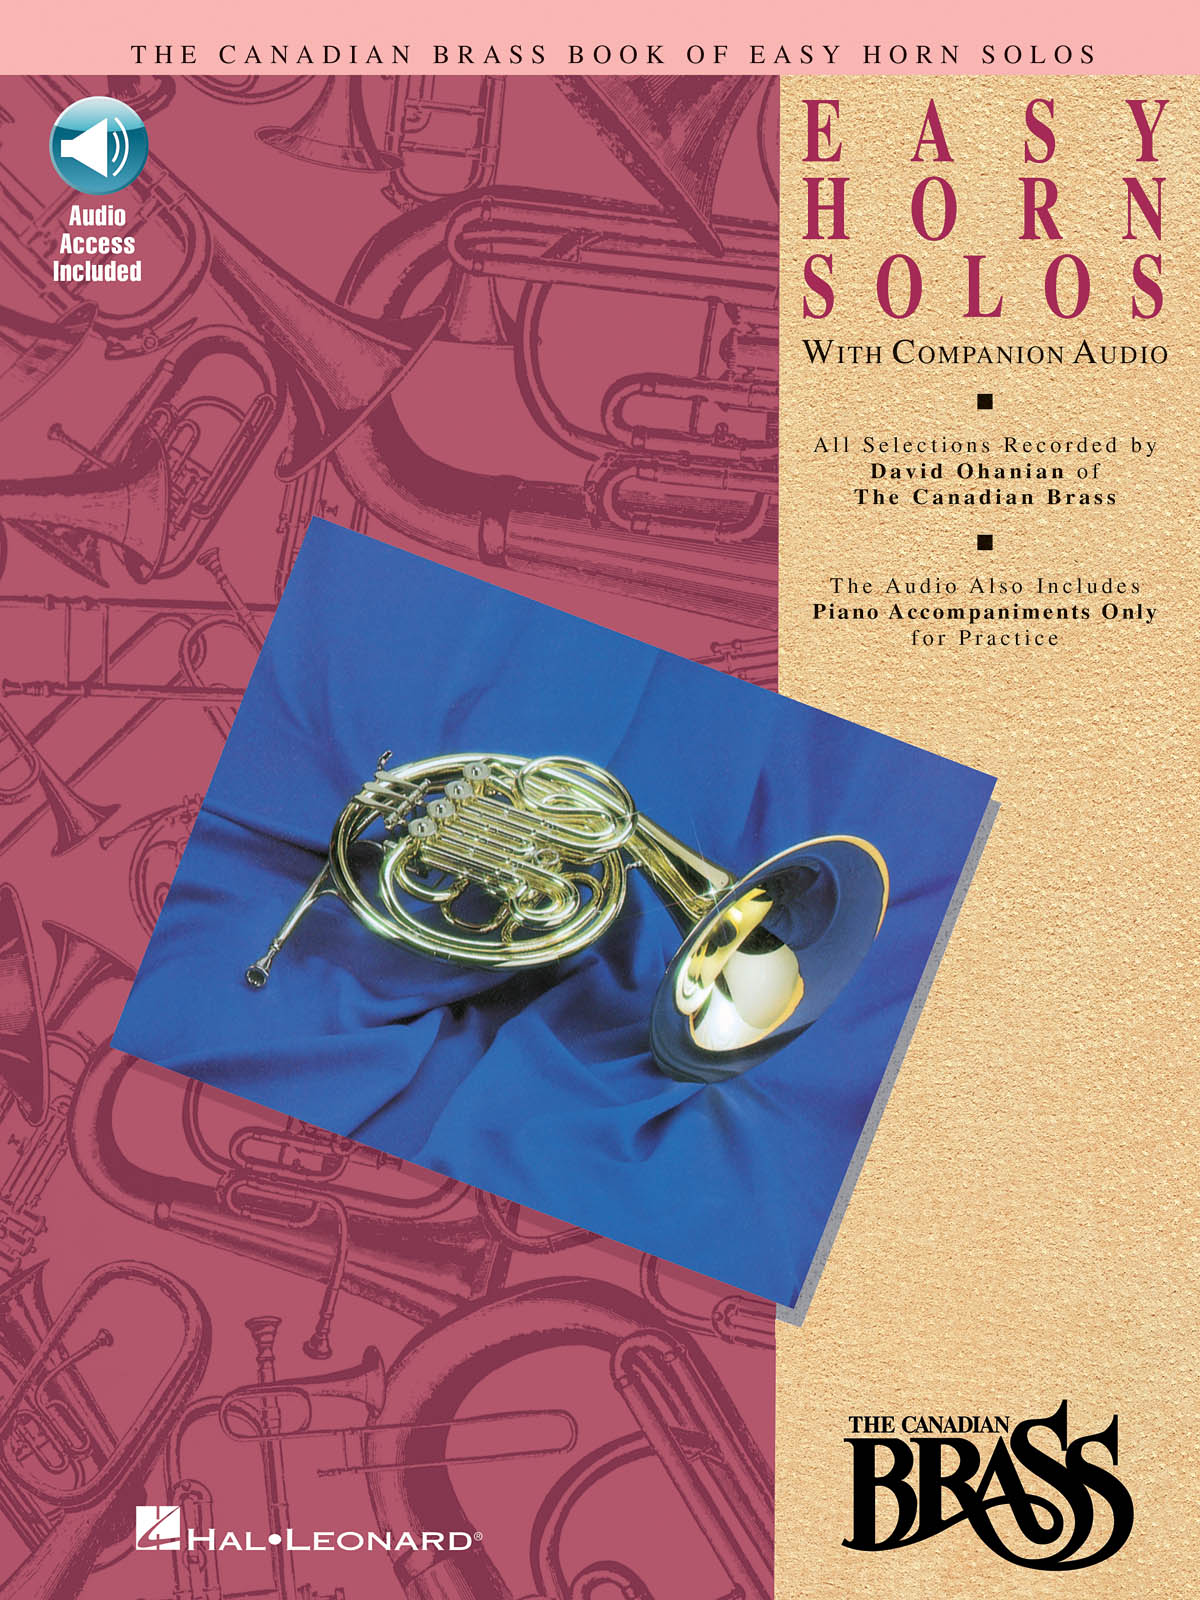 The Canadian Brass: Canadian Brass Book Of Easy Horn Solos: French Horn Solo: